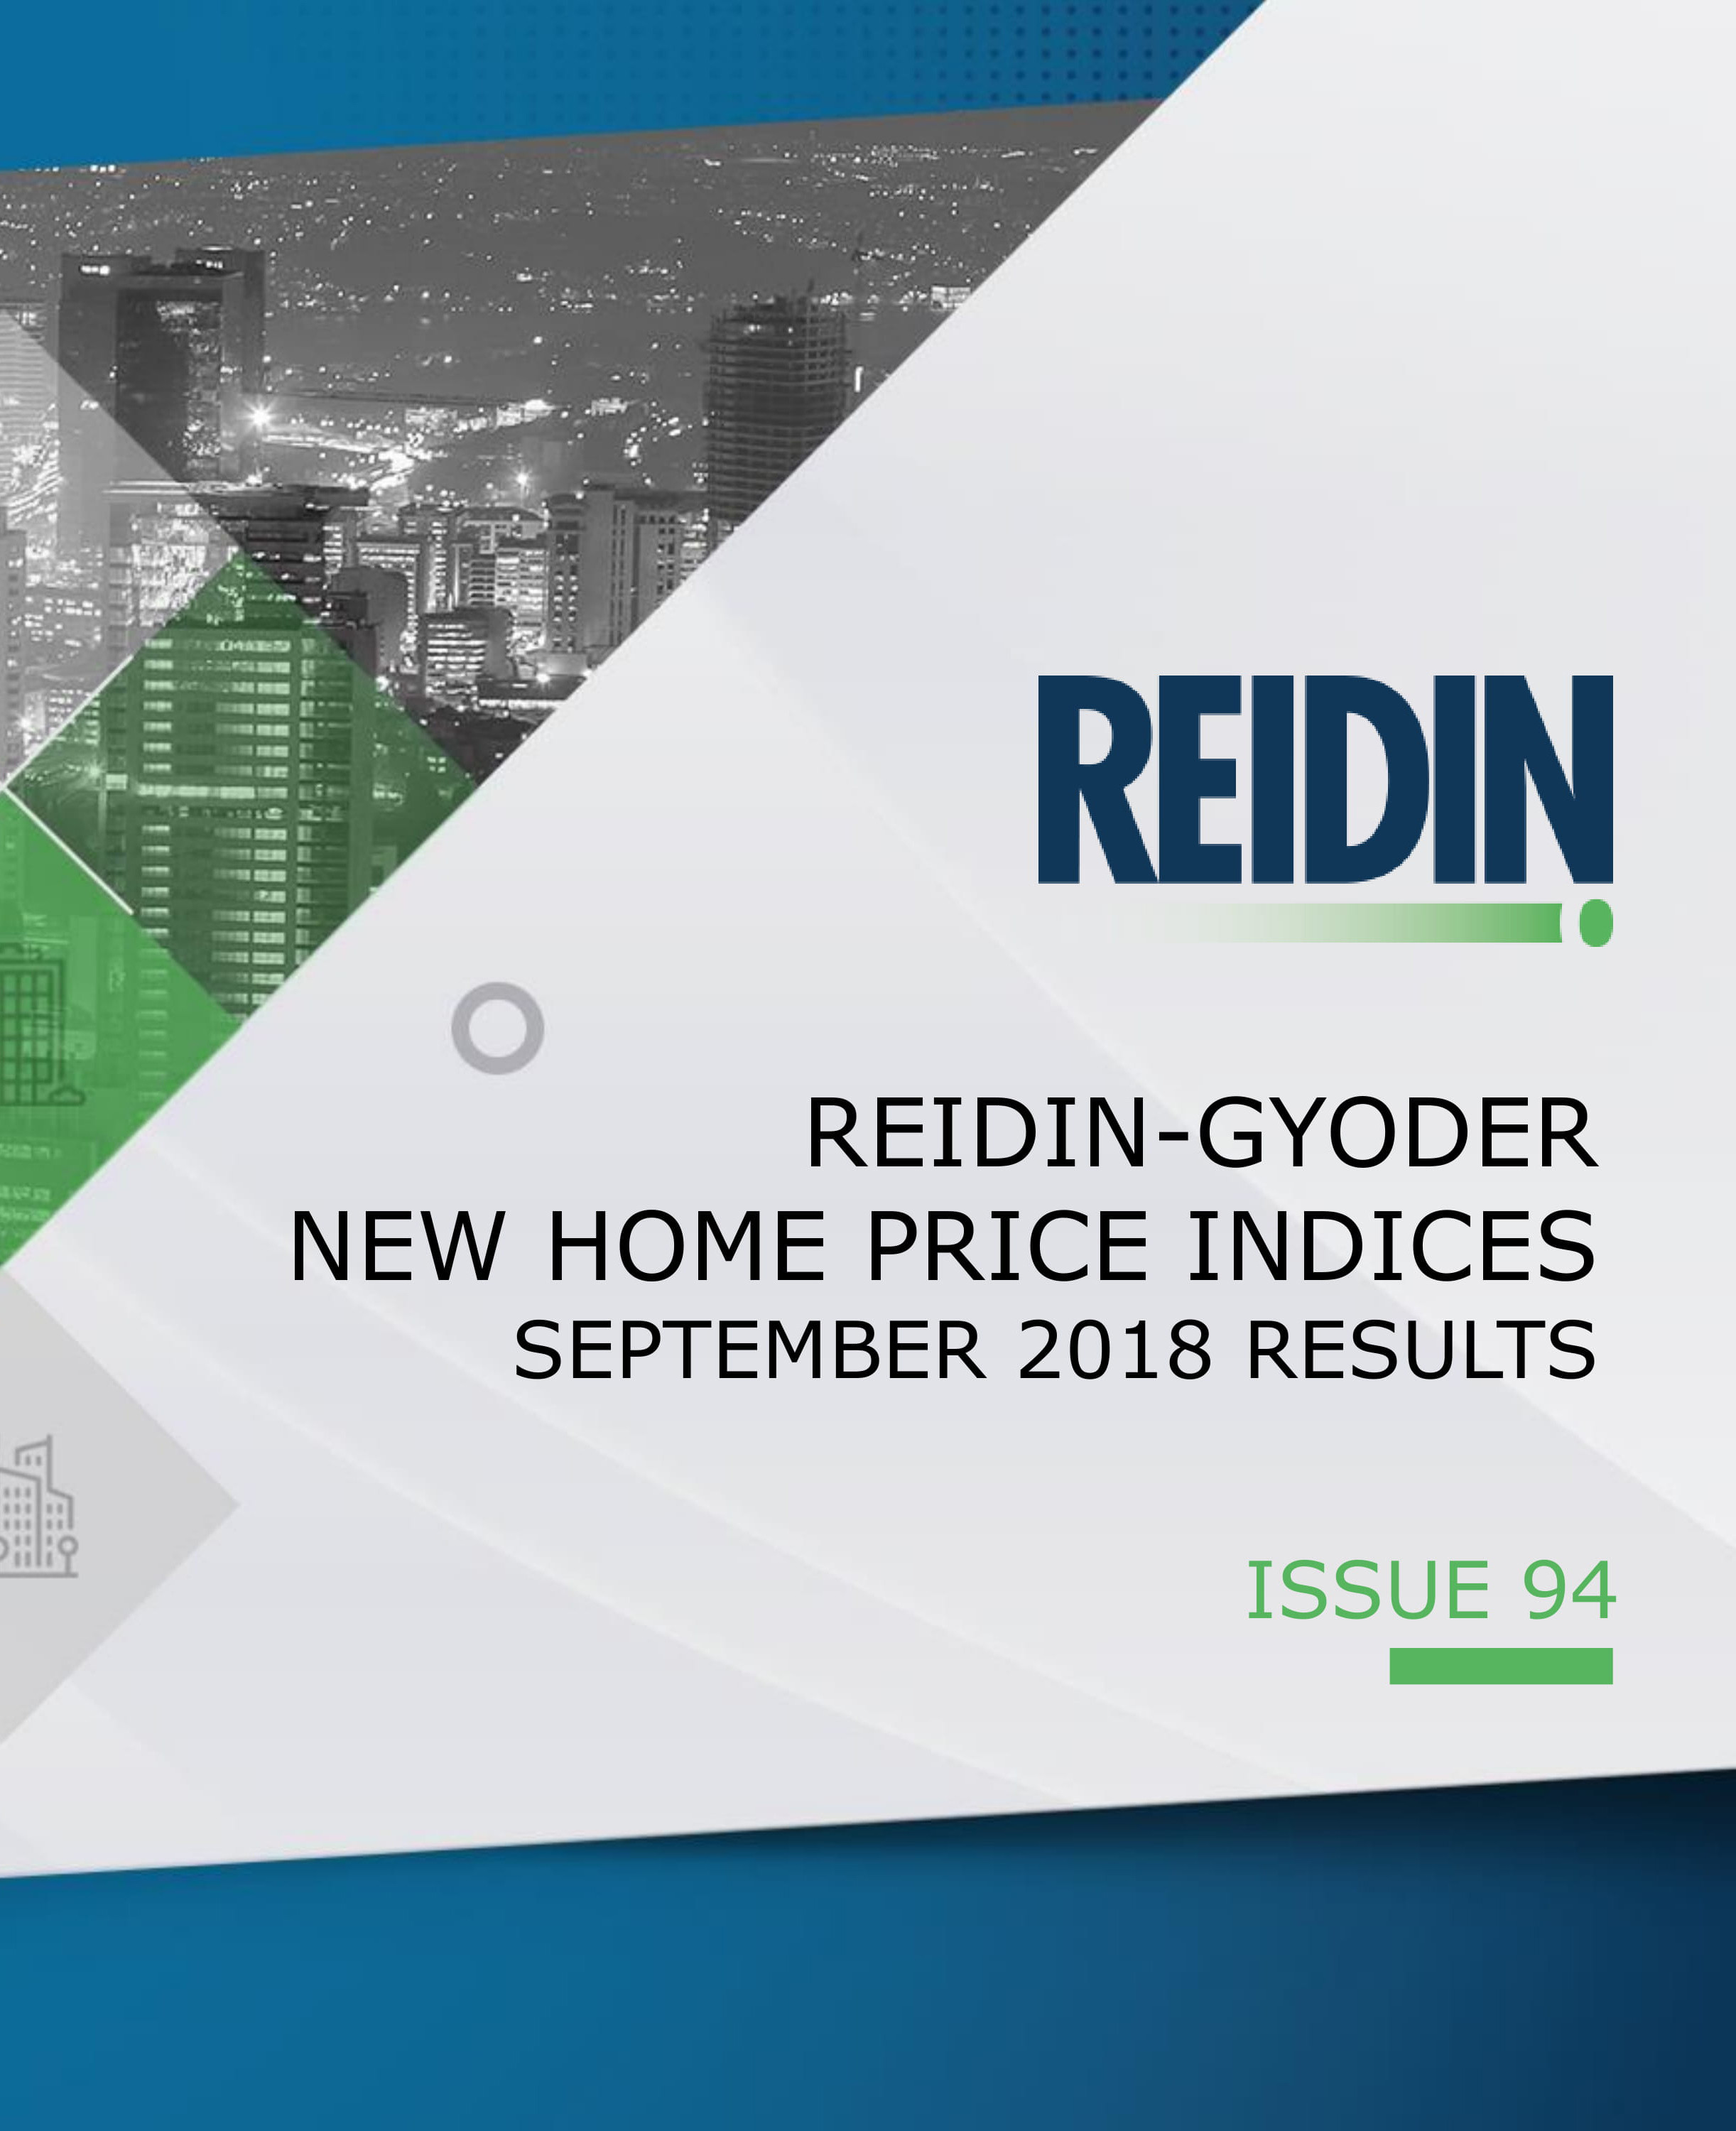 REIDIN-GYODER New Home Price Index: September 2018 Results